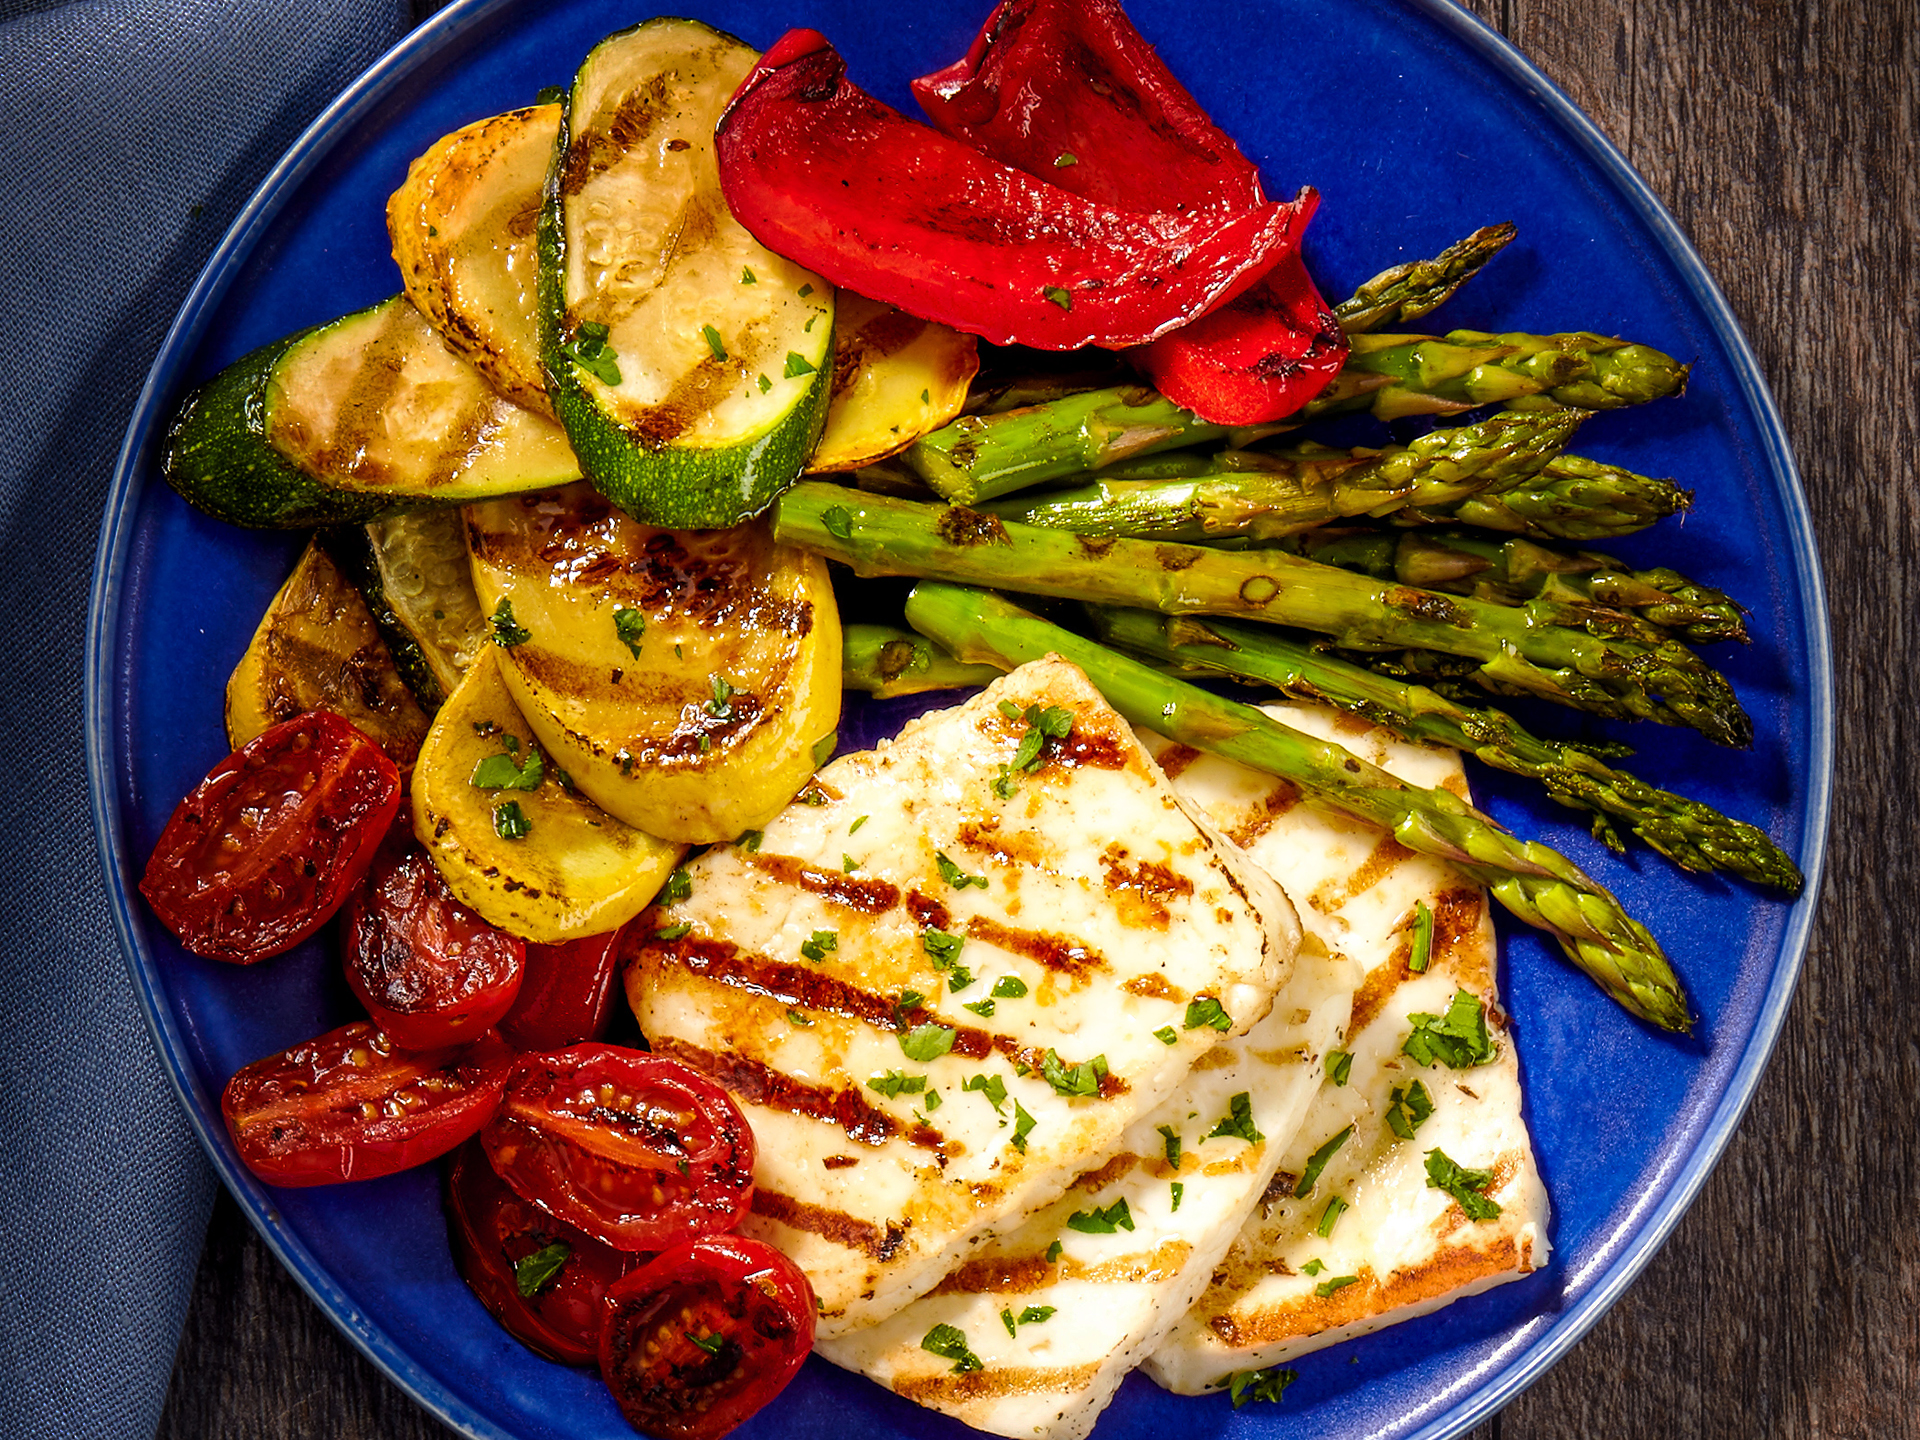 Grilled Halloumi with Vegetables